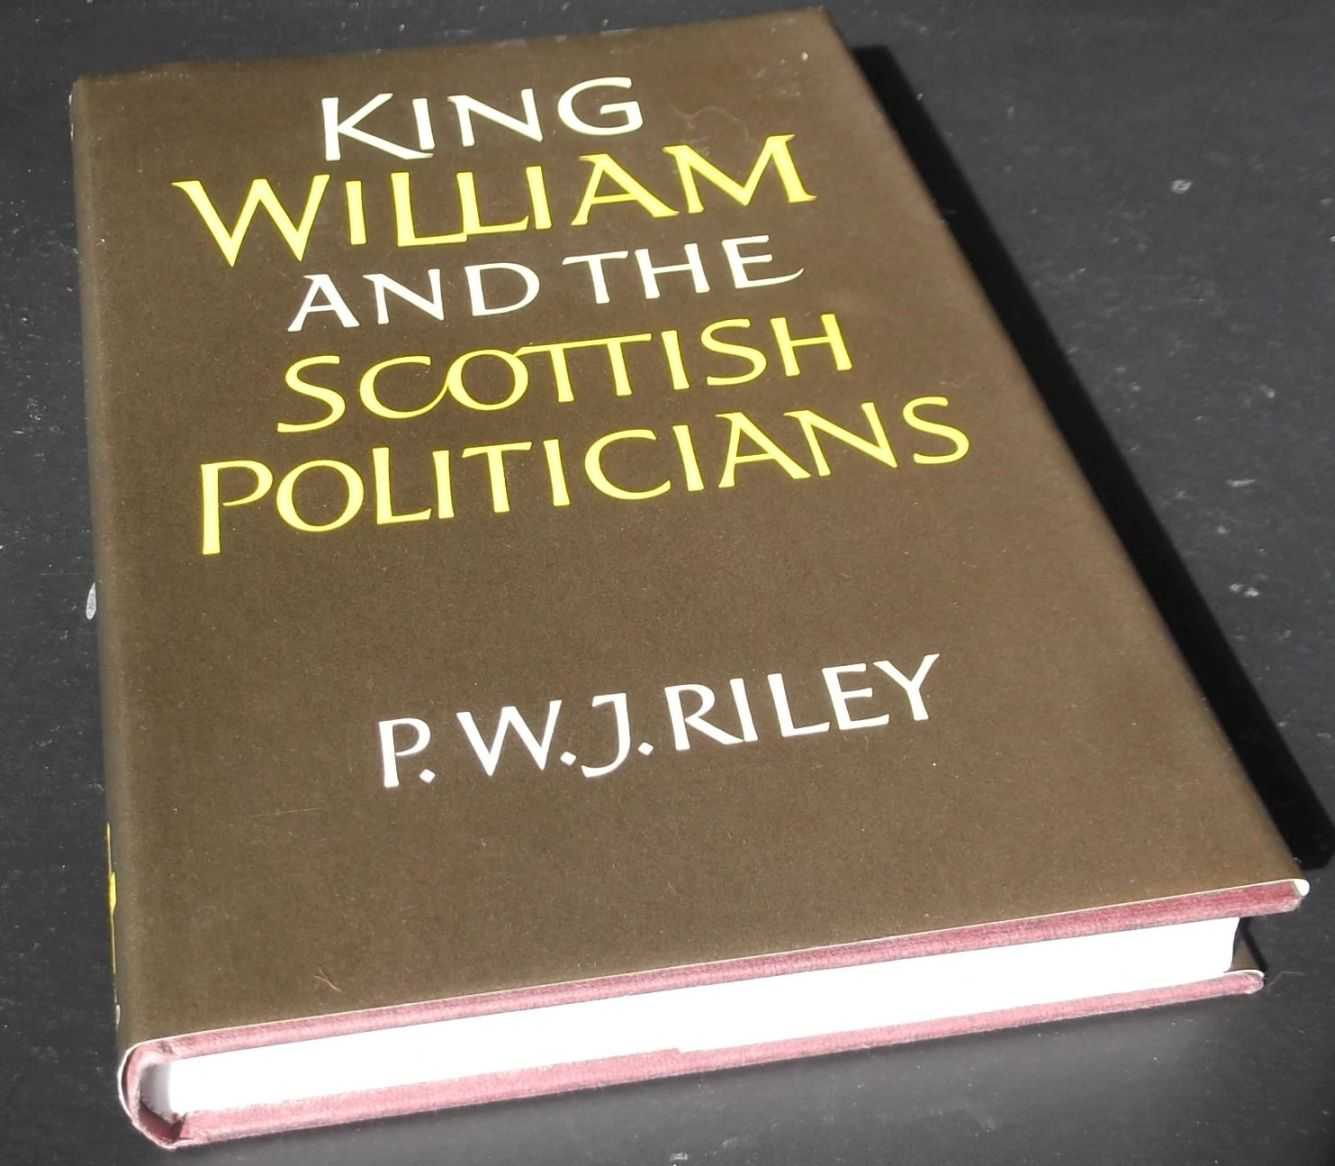 P.W.J. RILEY - King William and the Scottish Politicians